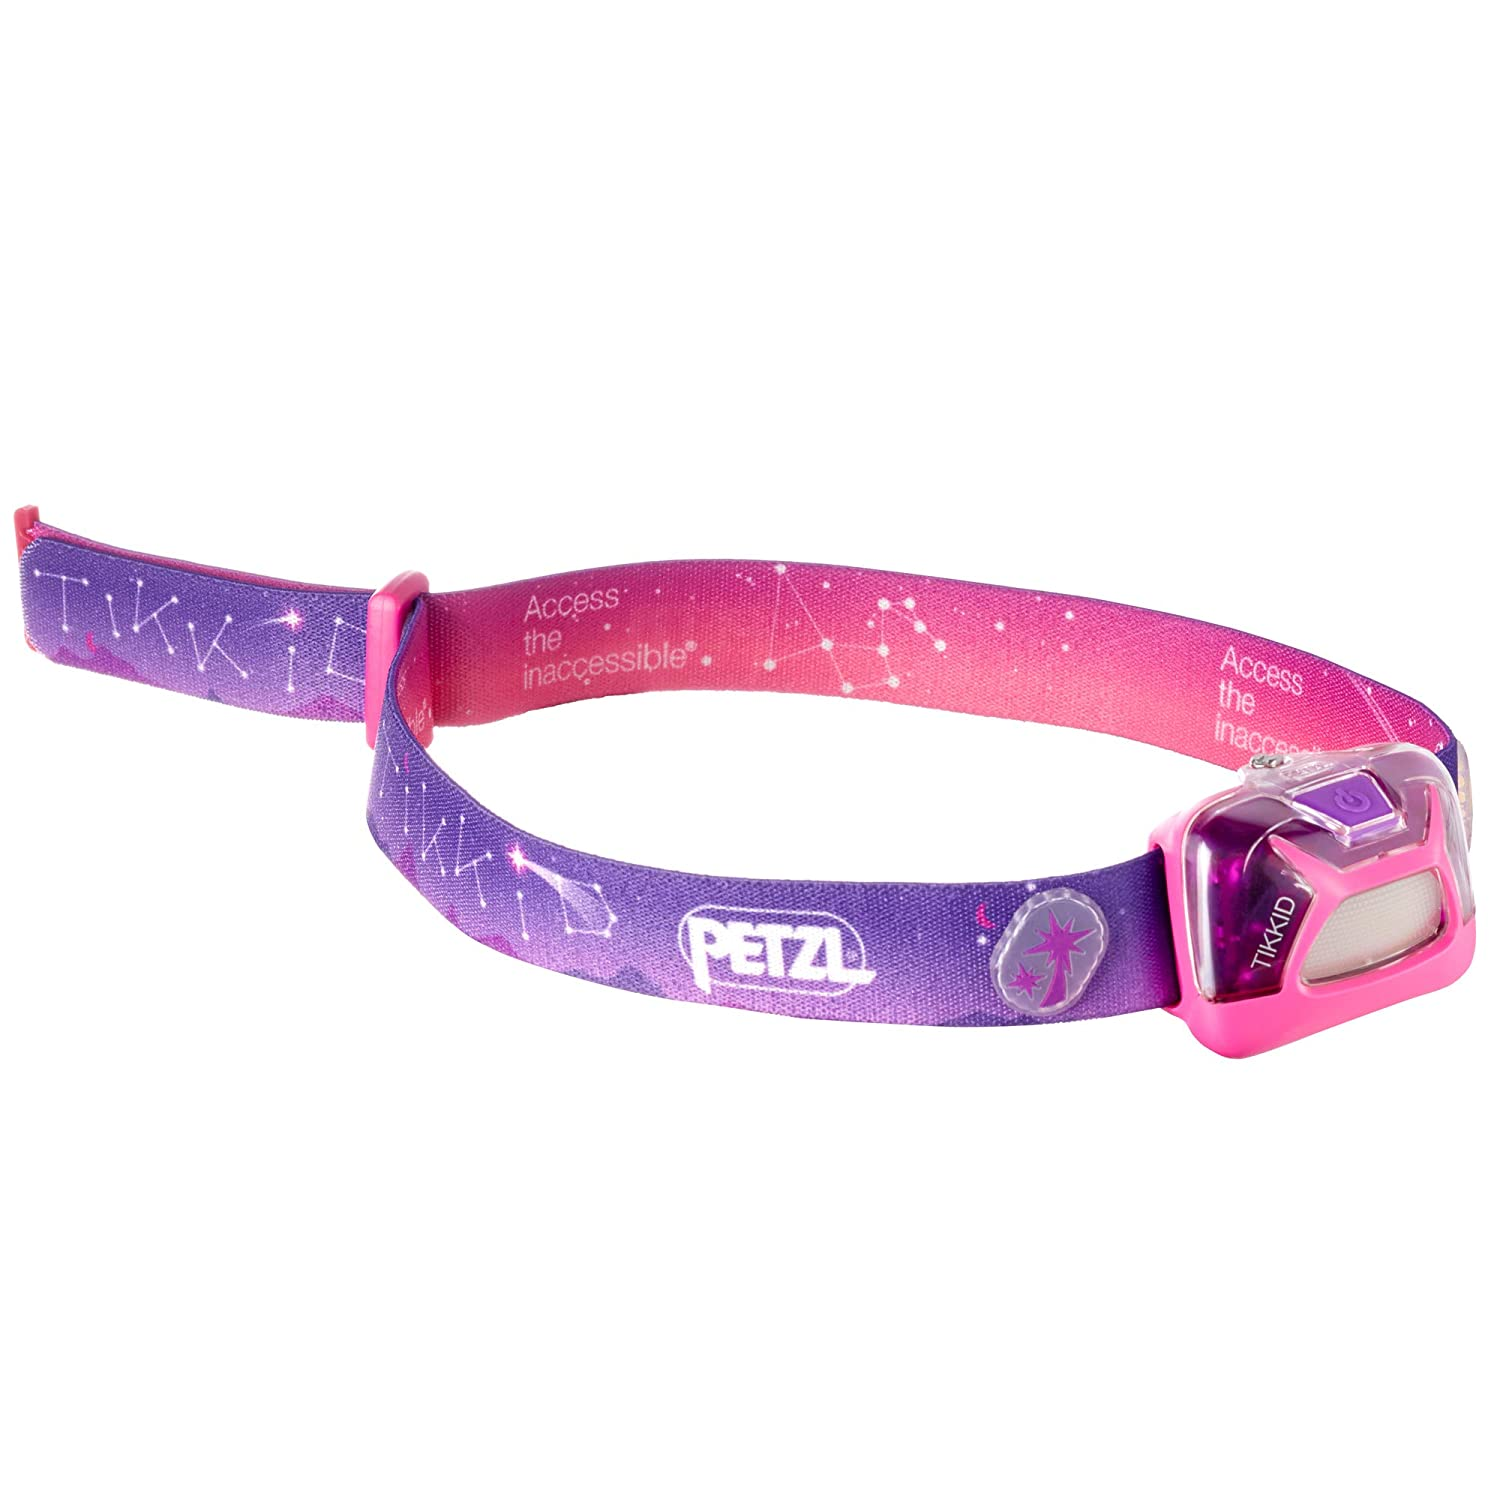 PETZL – TIKKID, 20 Lumens, Outdoor and Indoor Compact Headlamp for Reading and Play, Kids 3 Years and Older